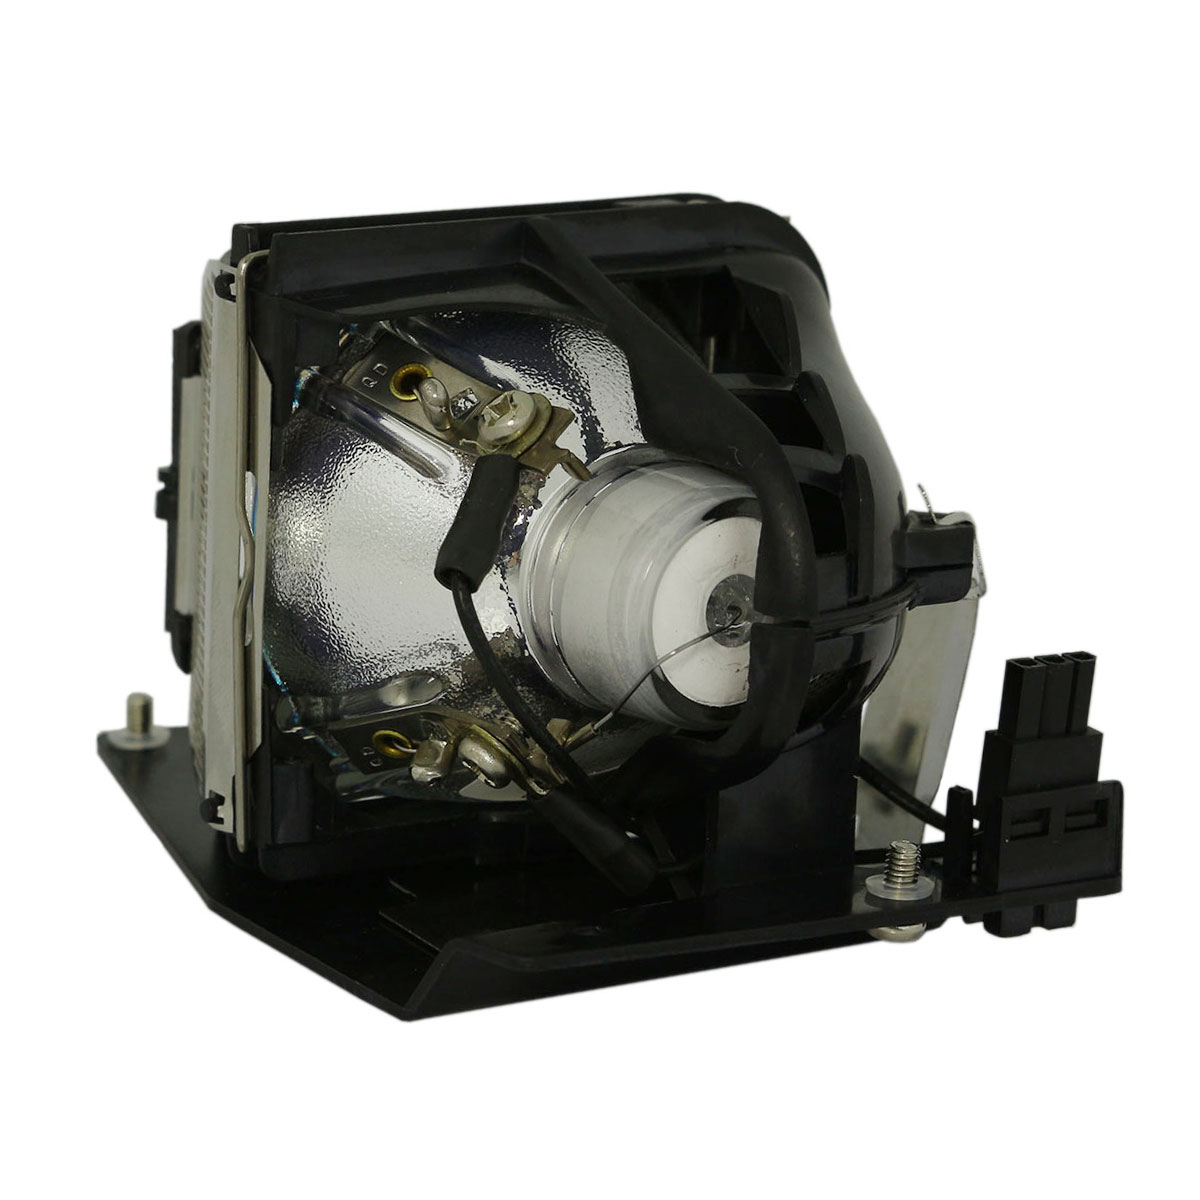 Lutema Economy for ASK Proxima M6 Projector Lamp (Bulb Only) - image 2 of 5